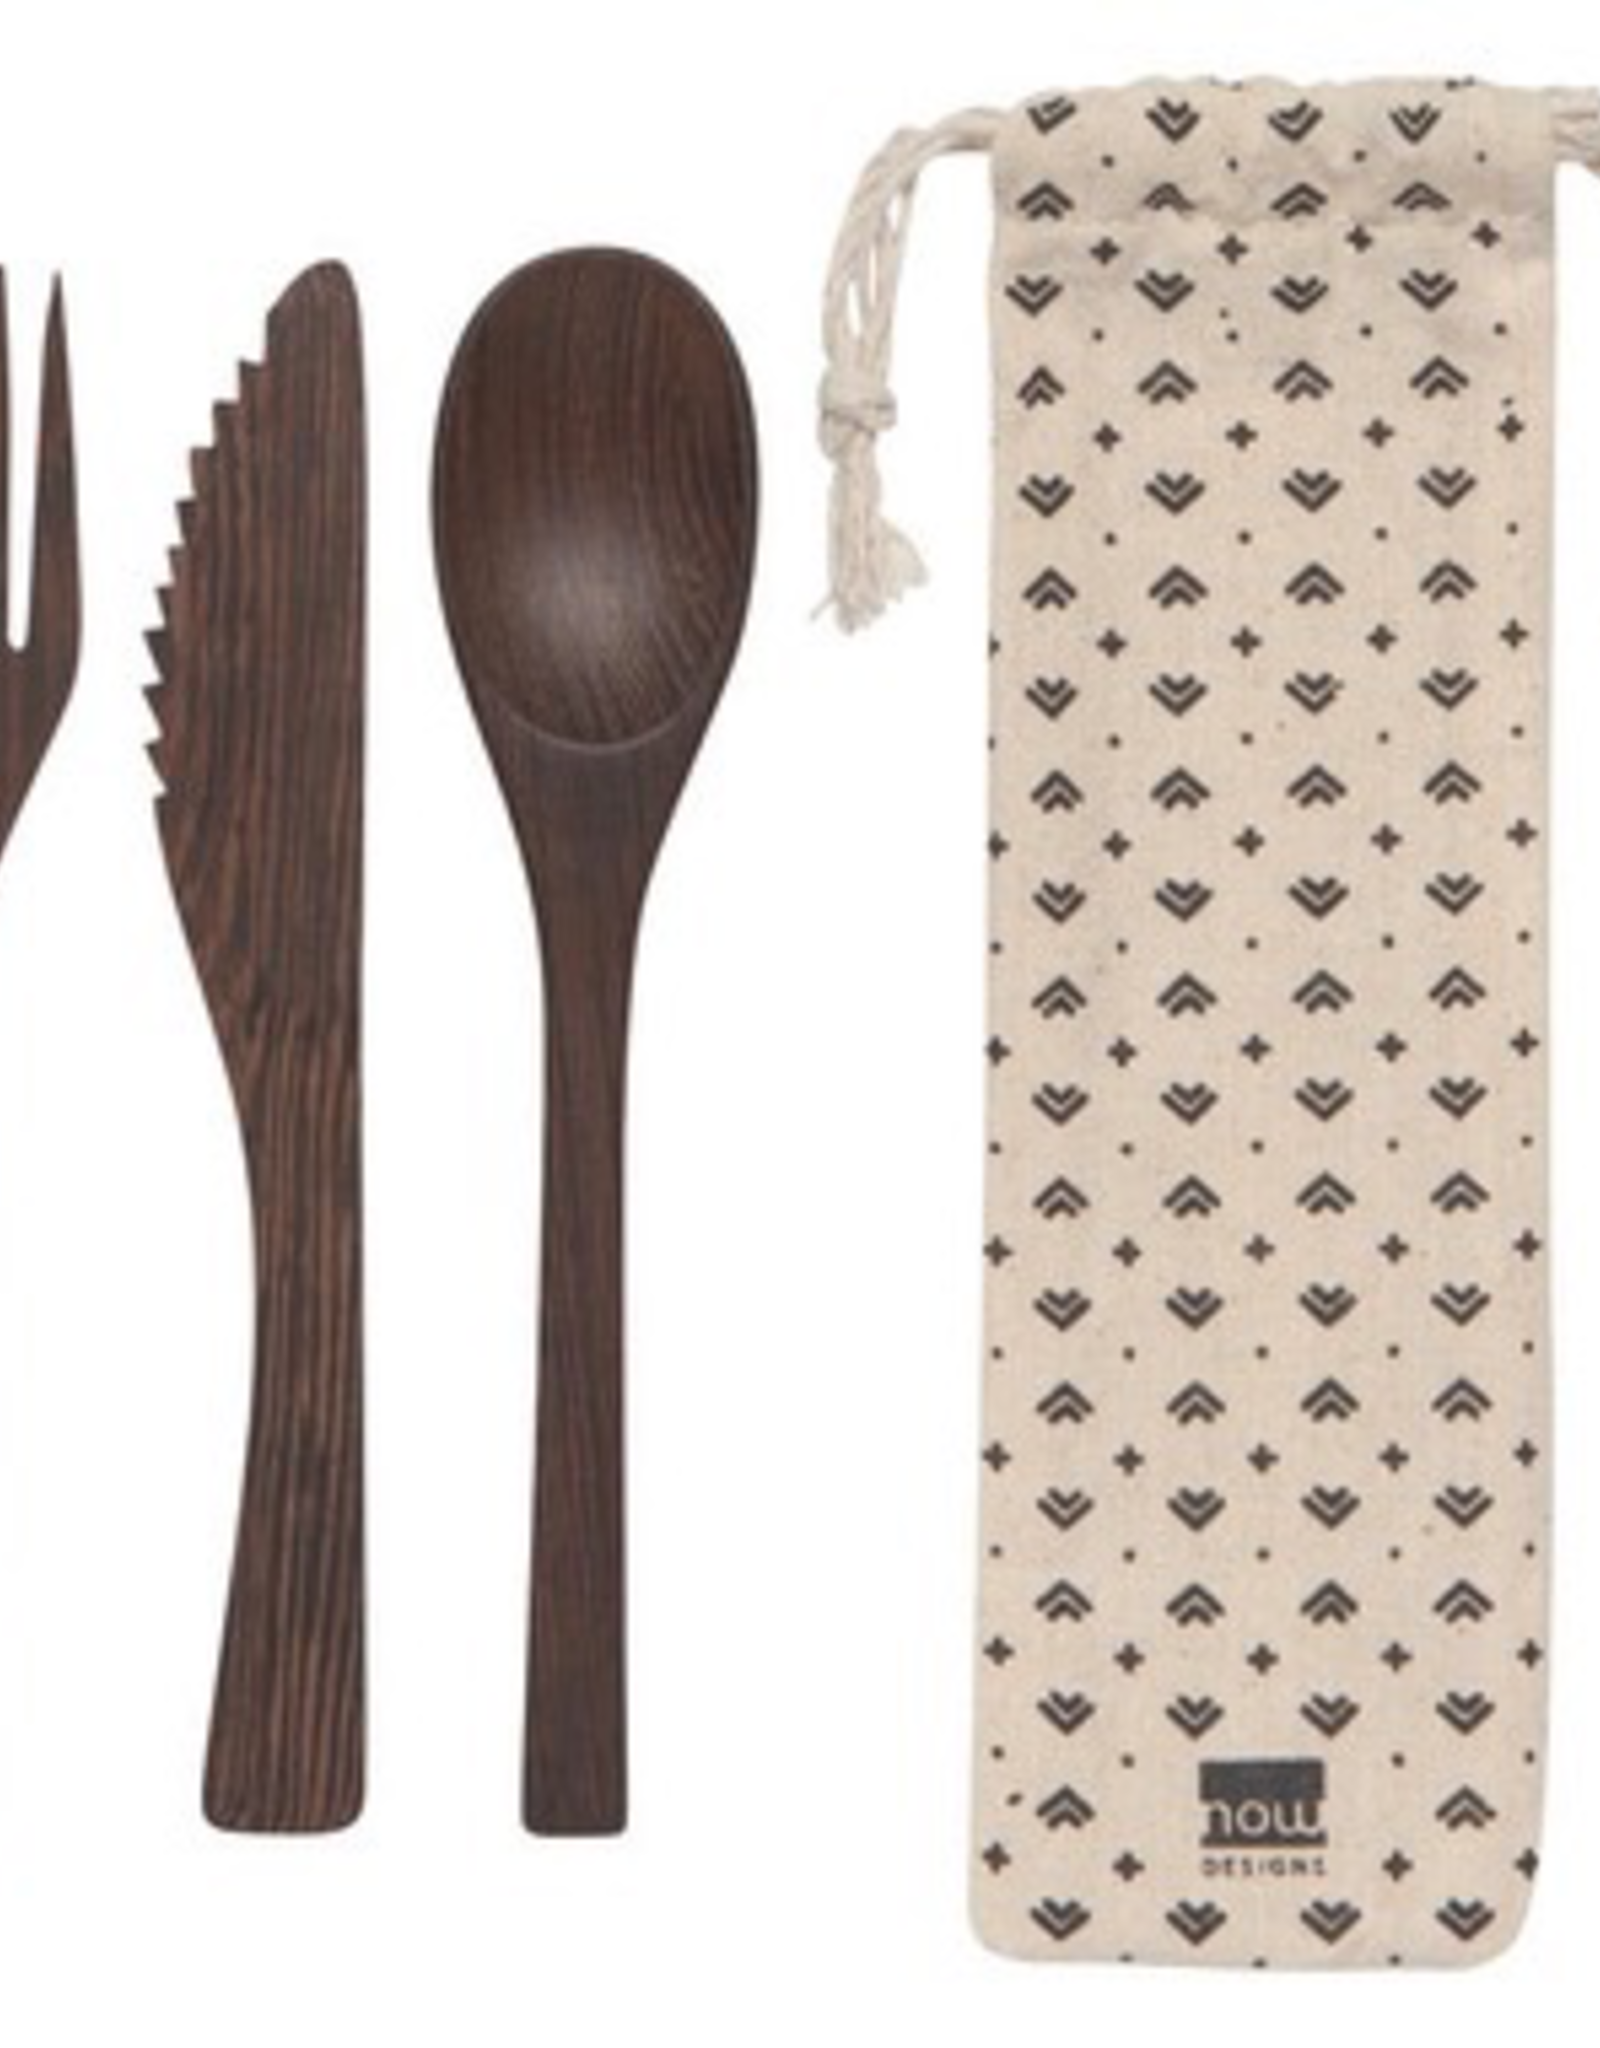 On The Go Cutlery Set / 3 Pieces